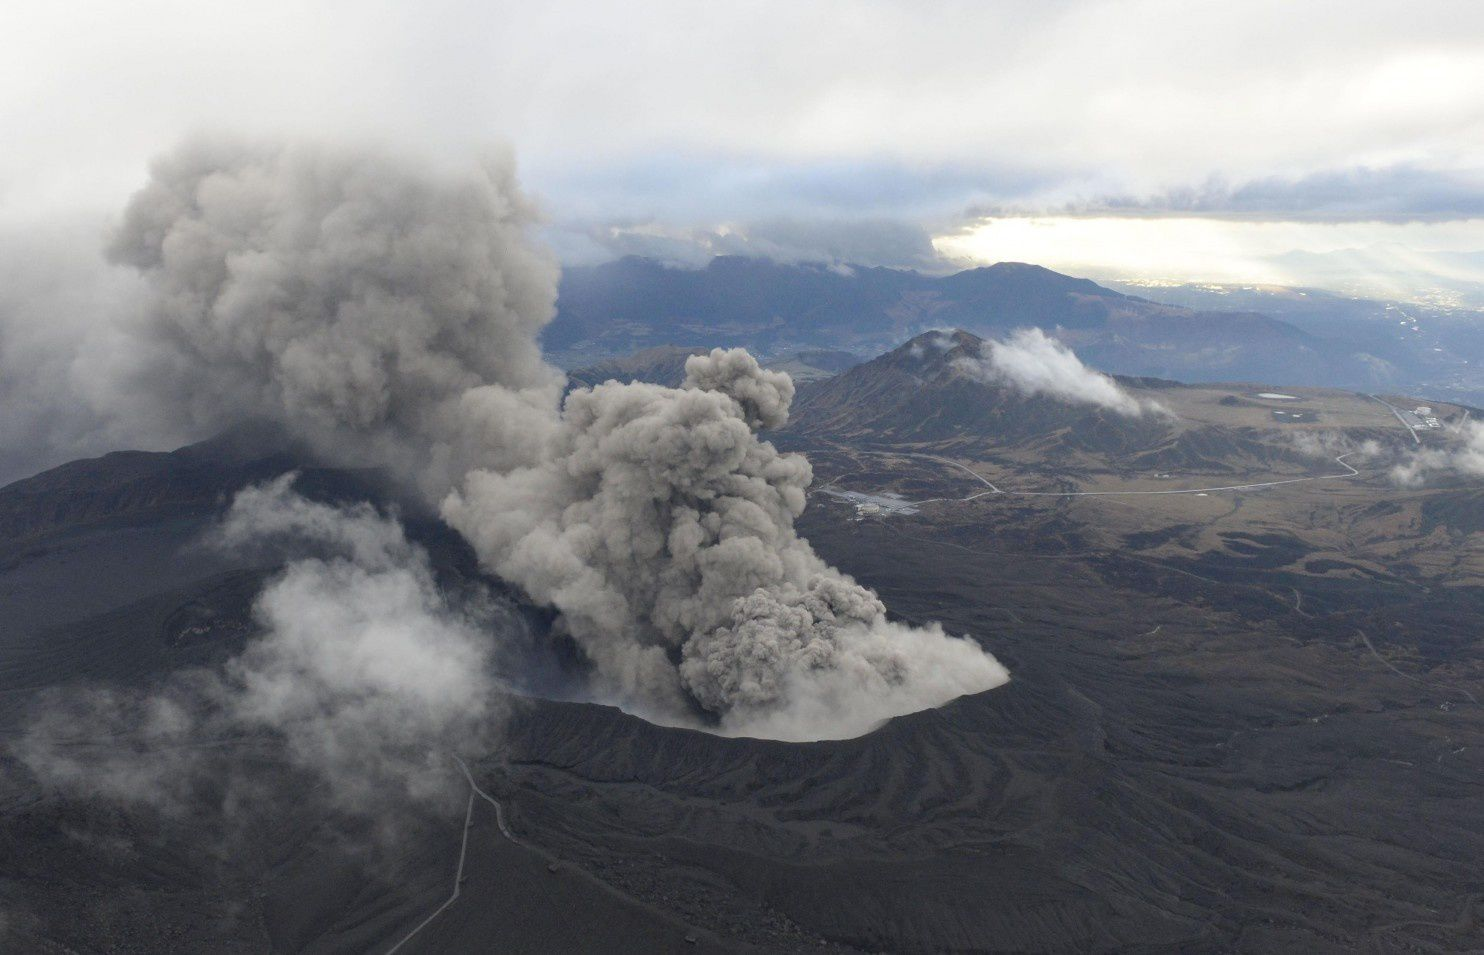 The plume from the eruption of Aso 11/26/2014 - photo Kyodo News / AP